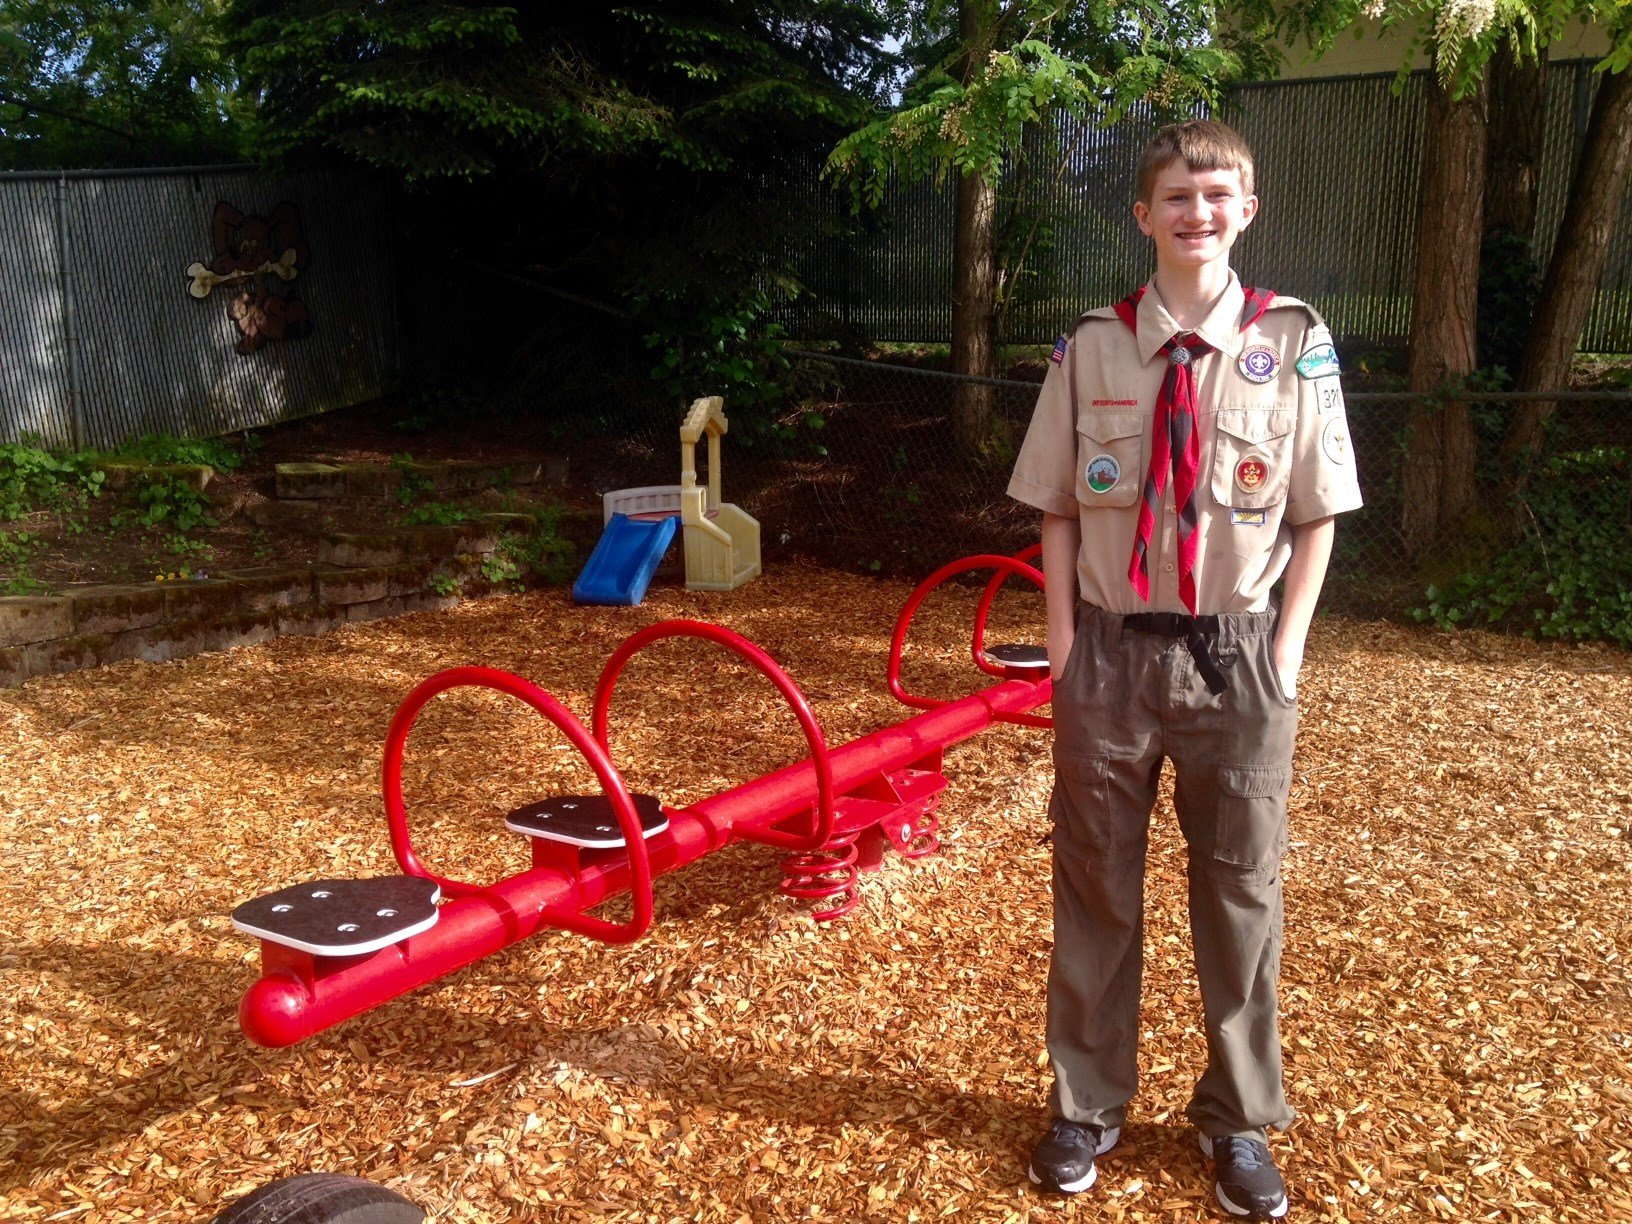 Brandon Miller in front of the new playground equipment at Share Homestead. (KPTV)